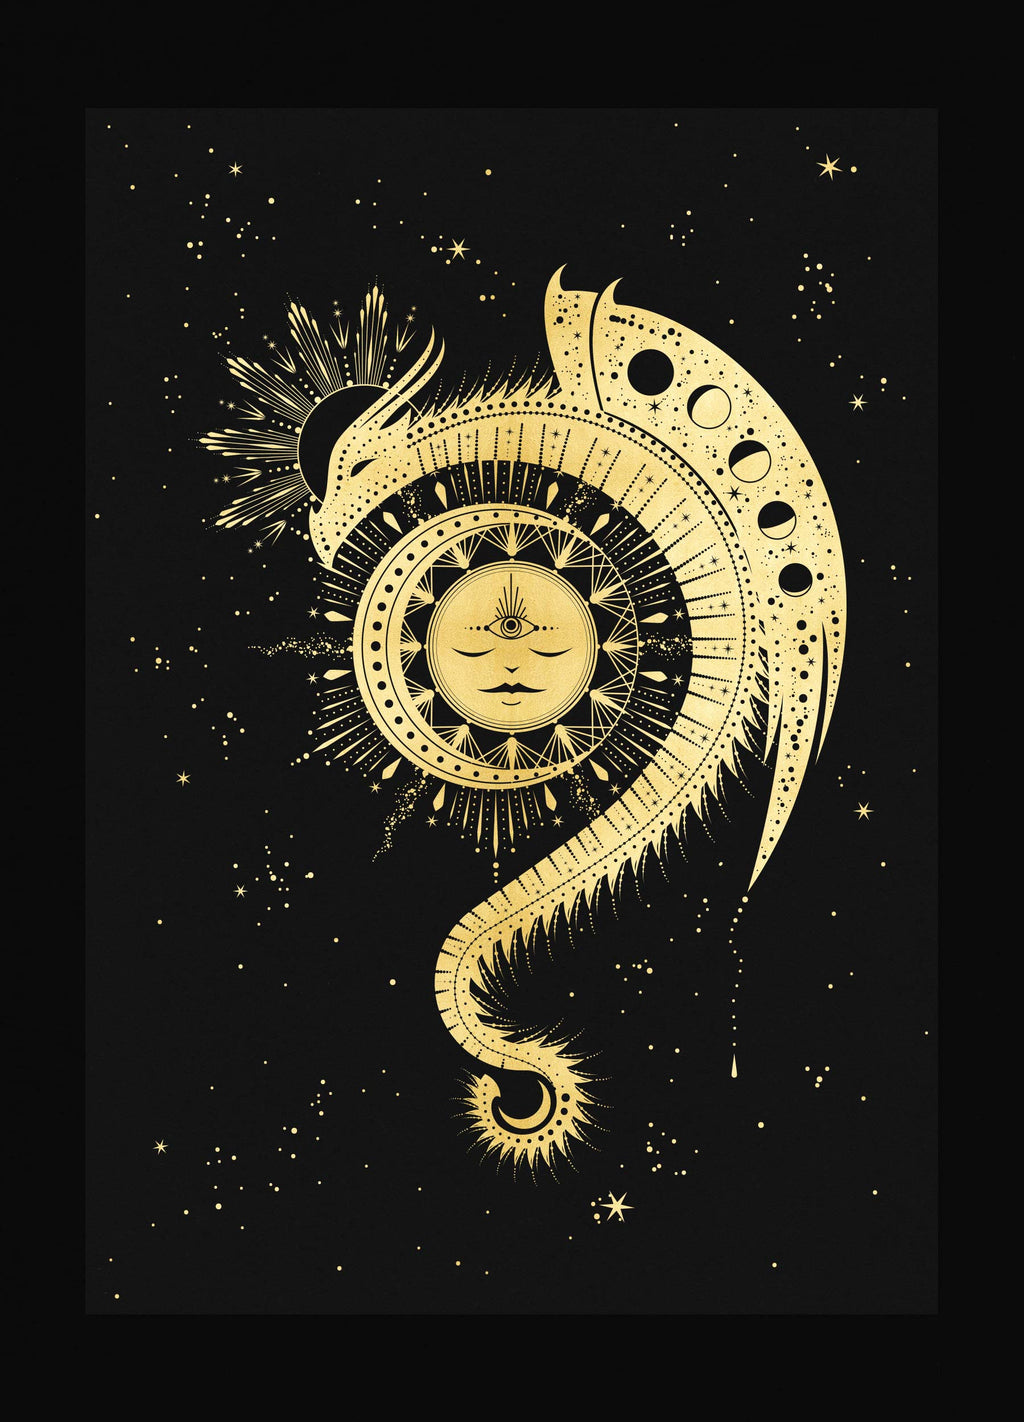 Magic Dragon sun and moon art print in gold foil and black paper with stars and moon by Cocorrina